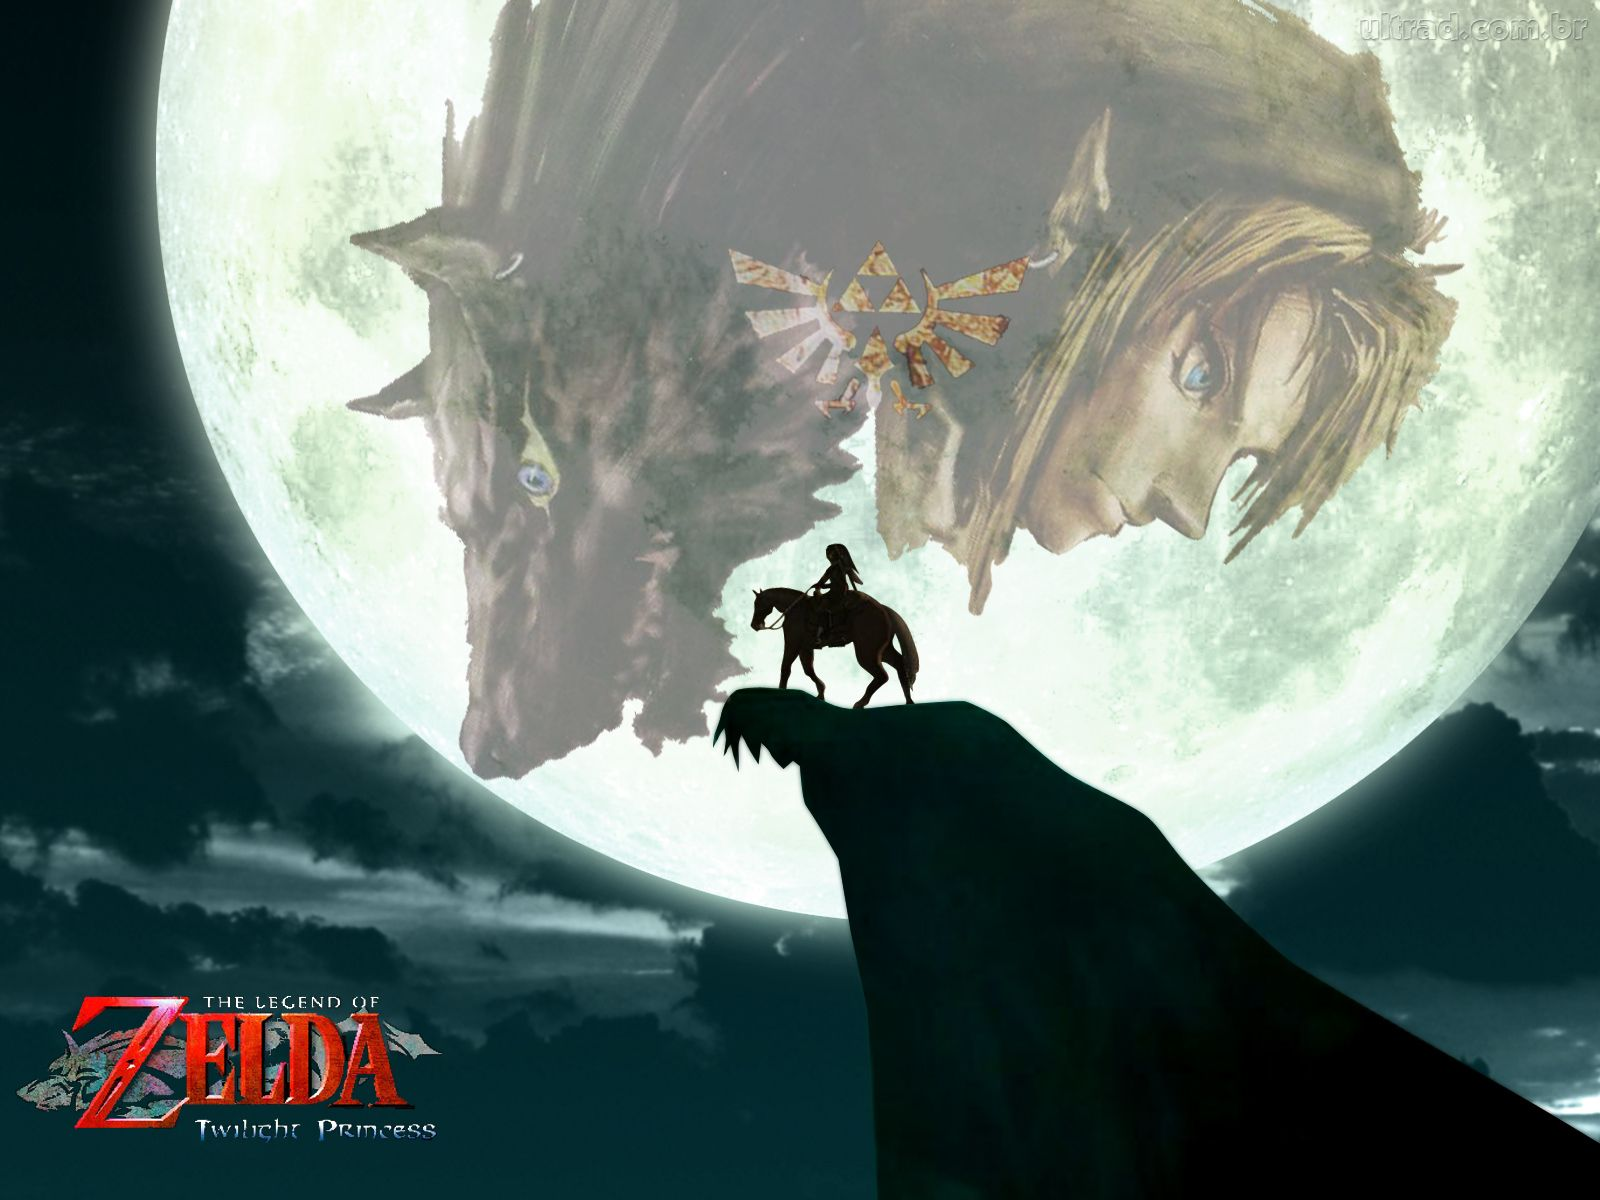 legend of zelda twilight princess World game 1600x1200